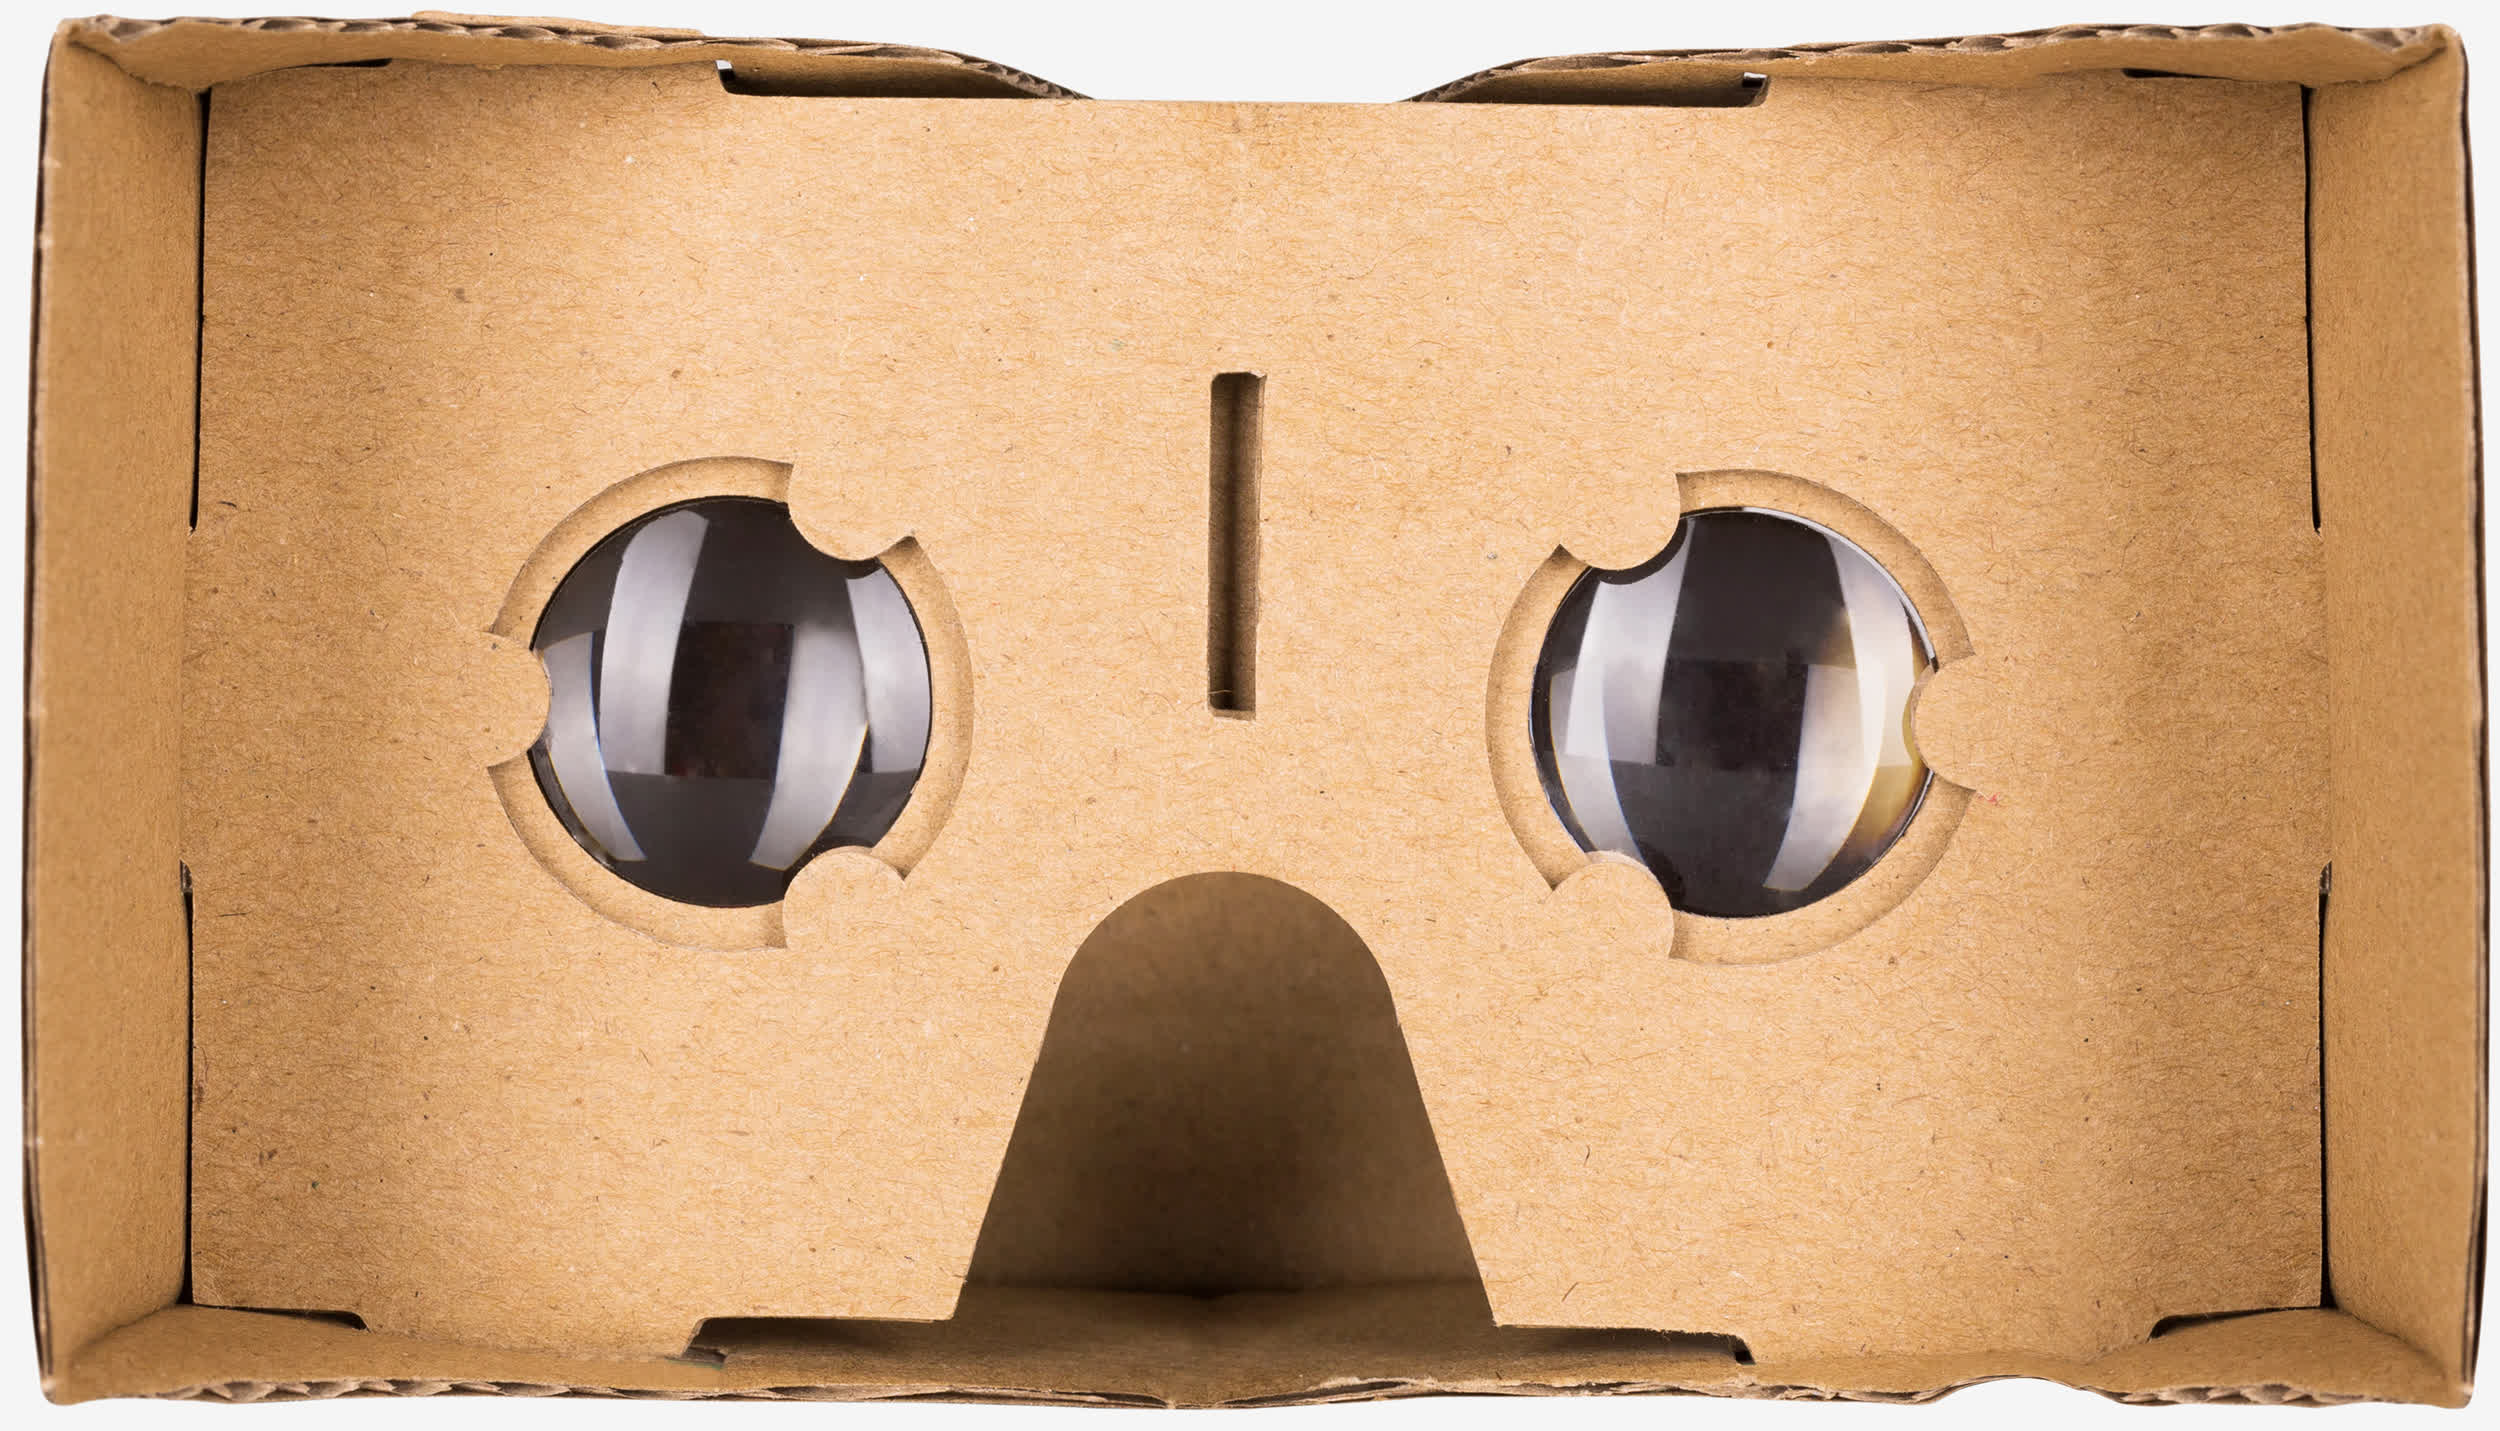 Google discontinues Cardboard VR viewer after nearly seven years